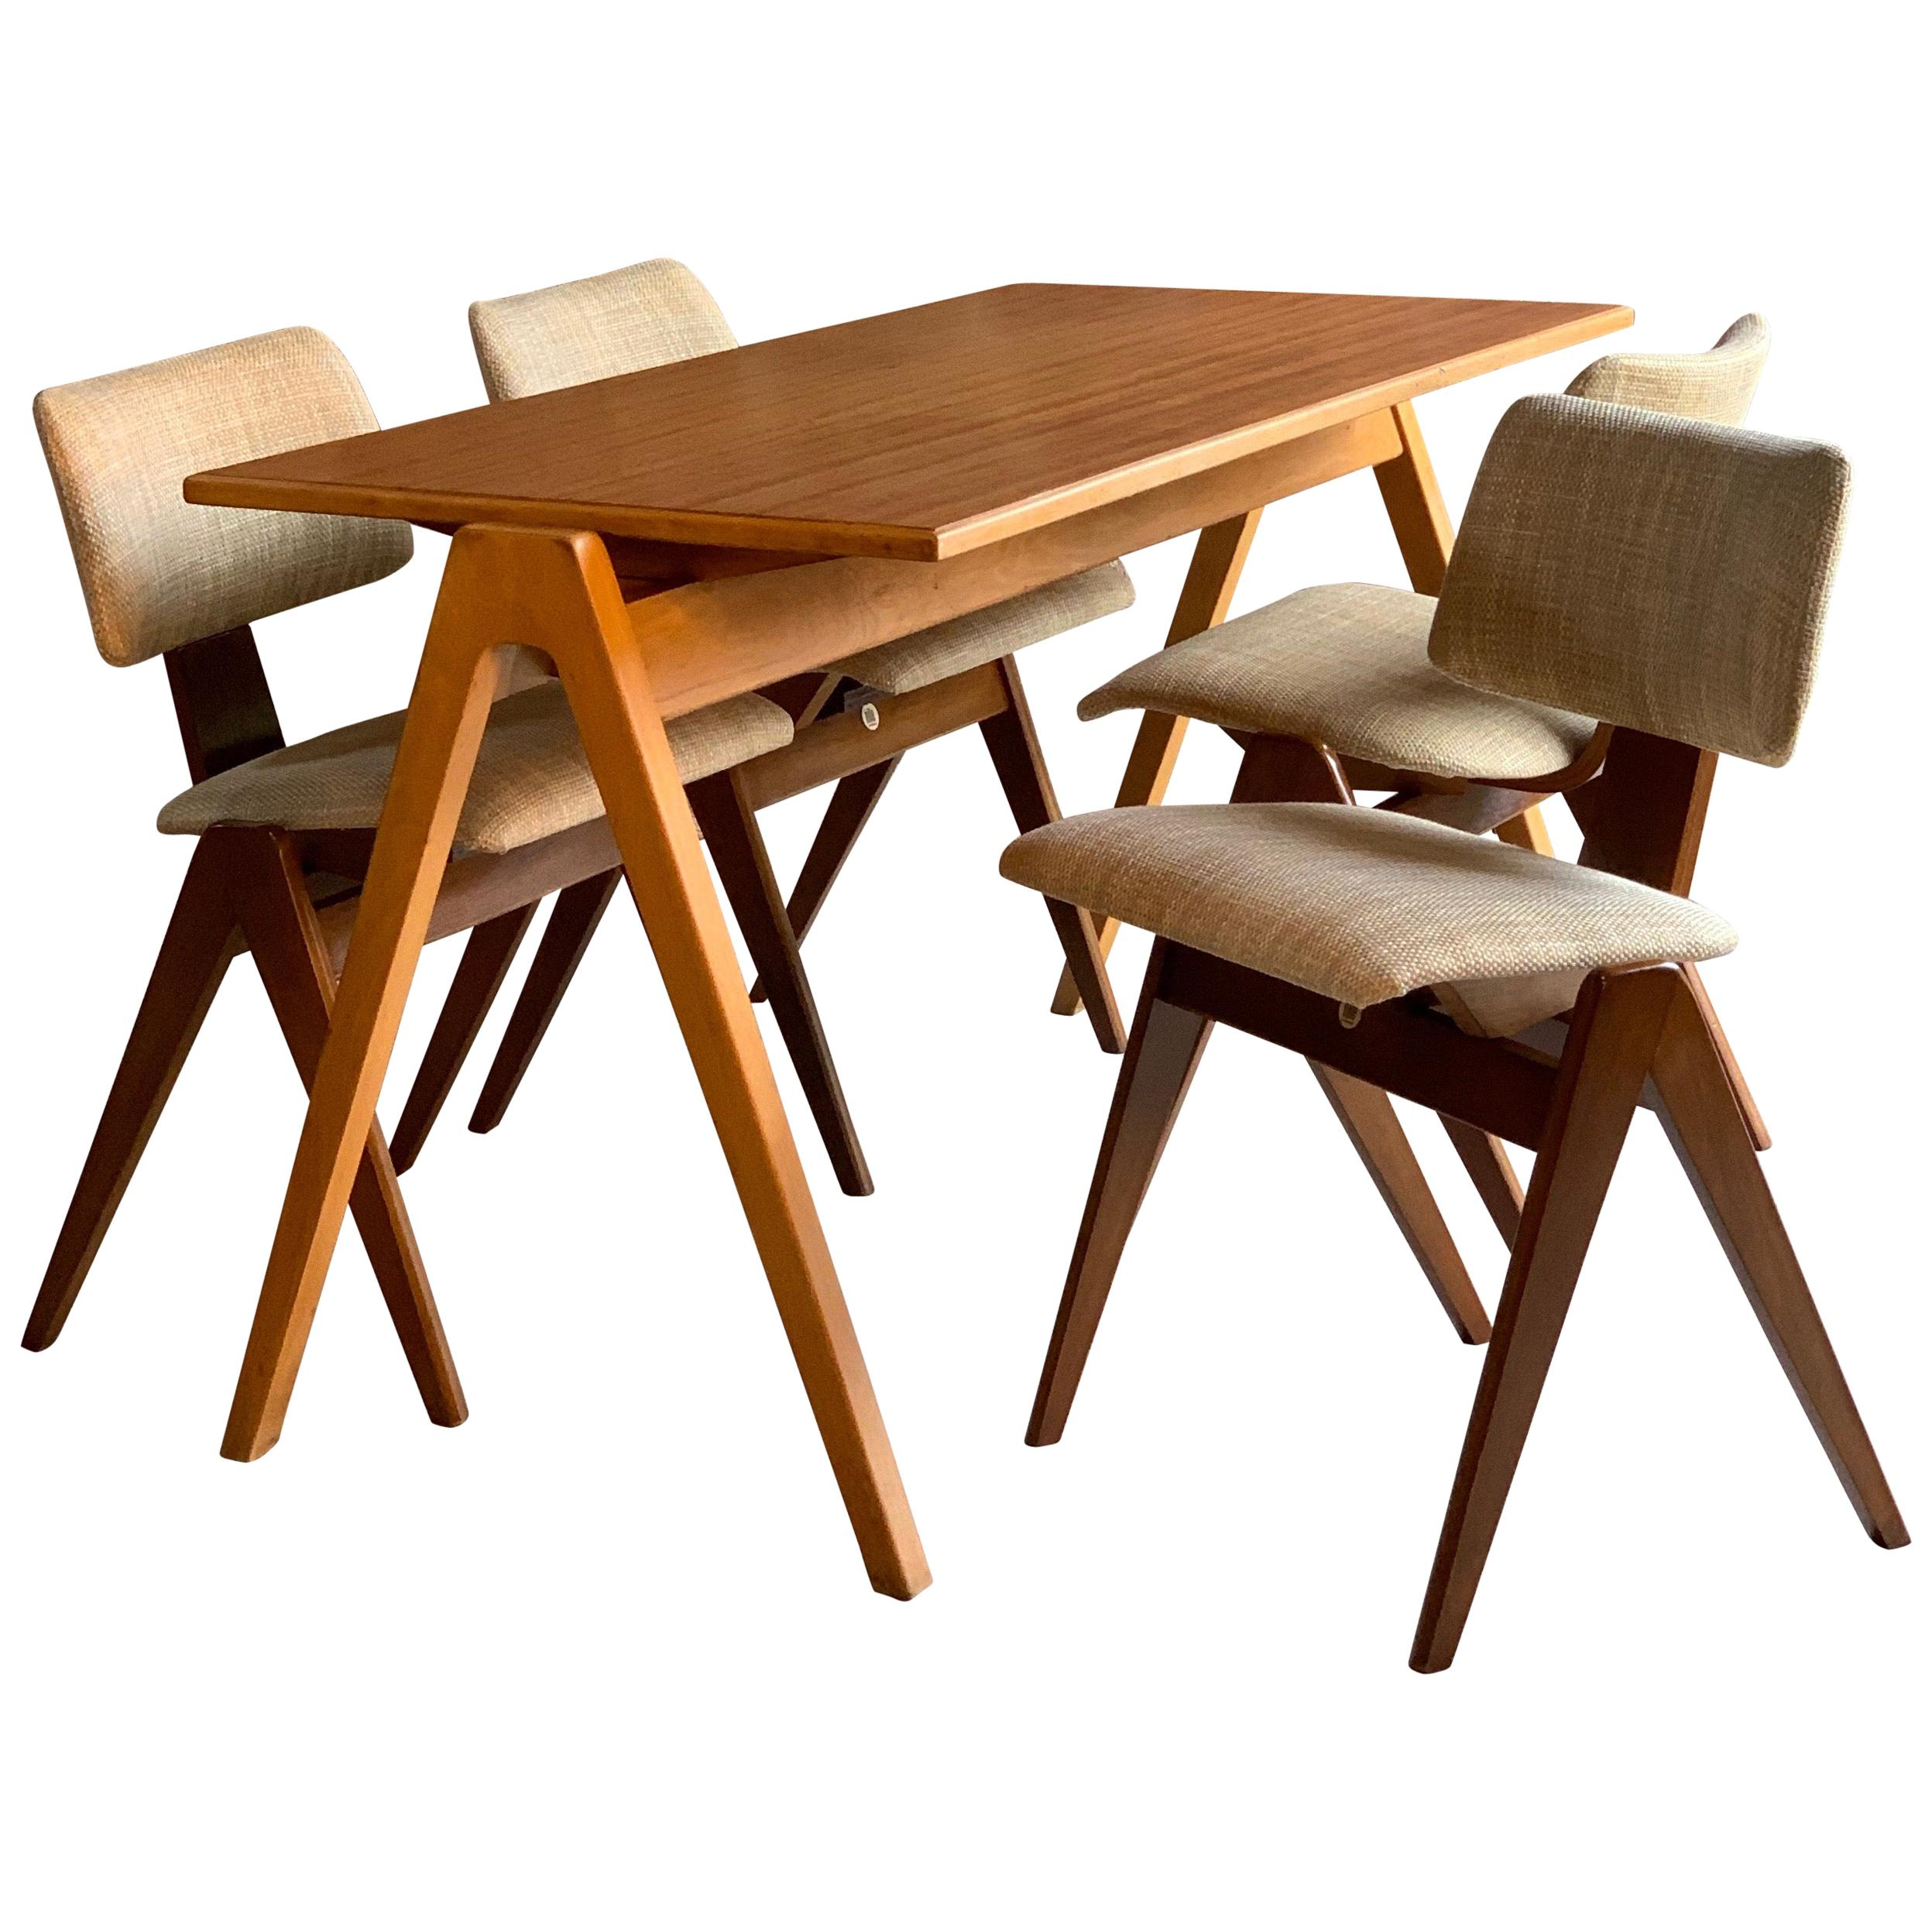 Robin Day Hillestak Dining Table U0026 Chairs By Hille Midcentury Design, Circa  1950